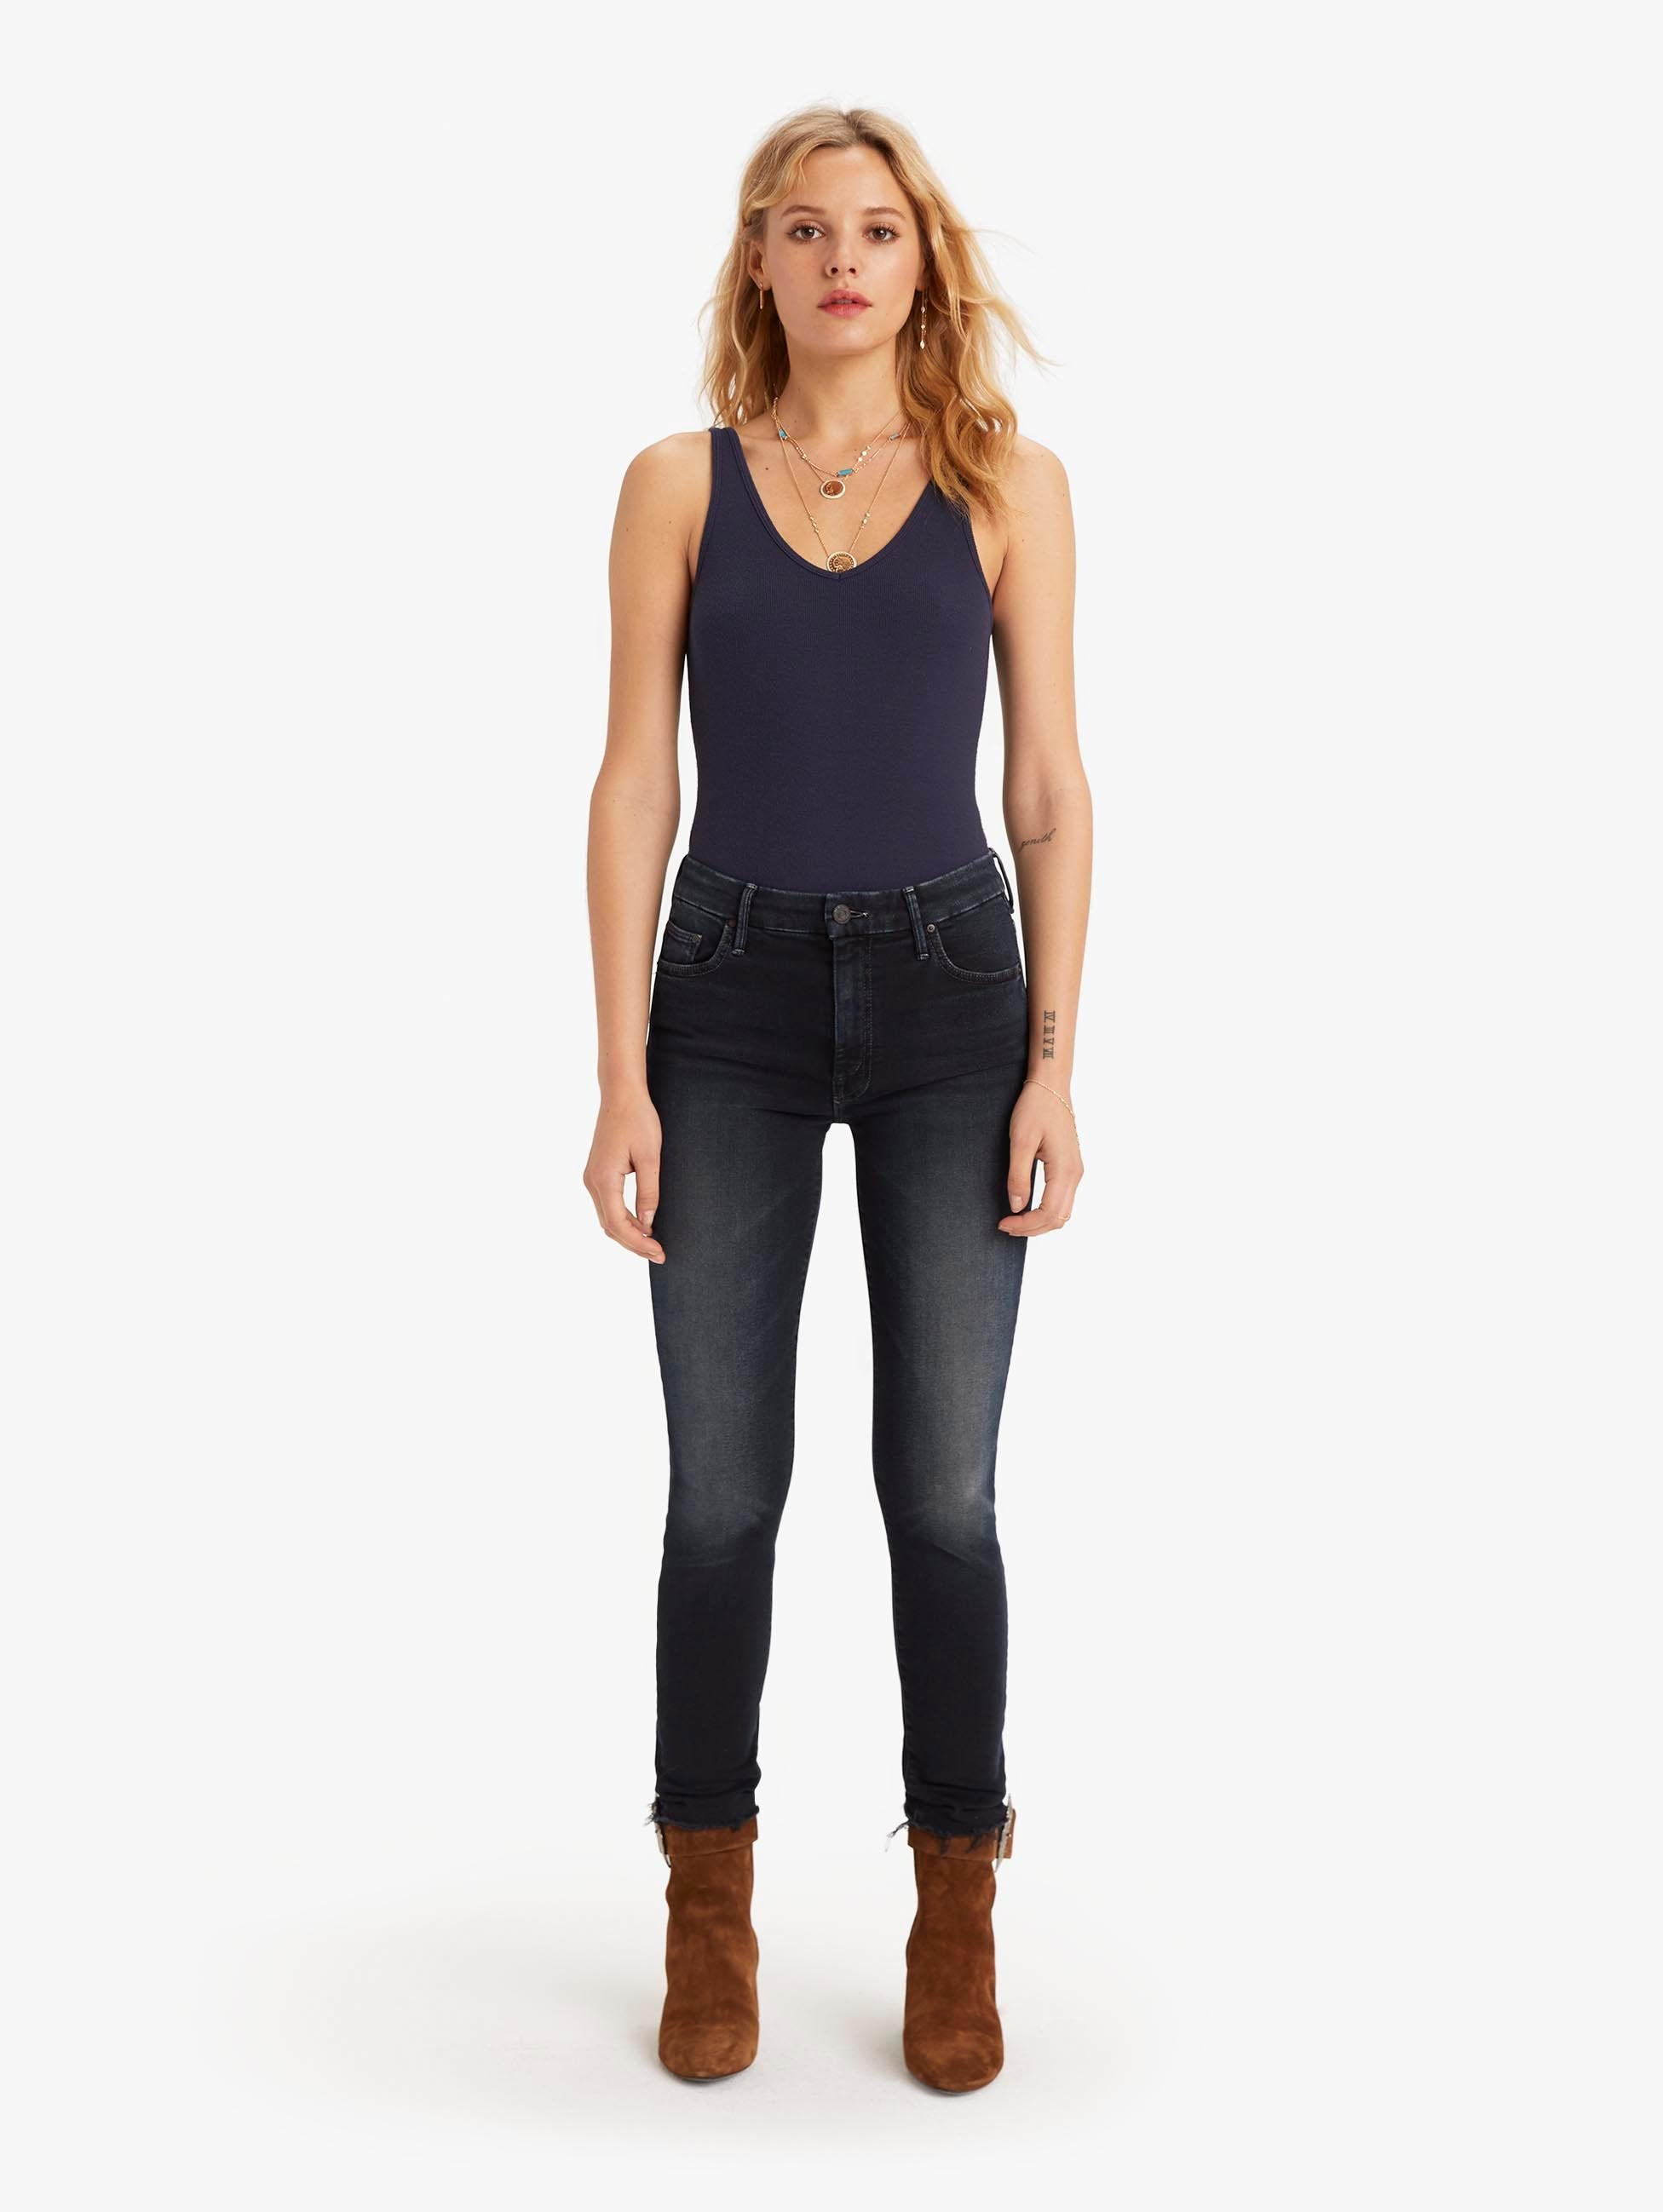 HIGH WAIST LOOKER ANKLE FRAY LAST CALL